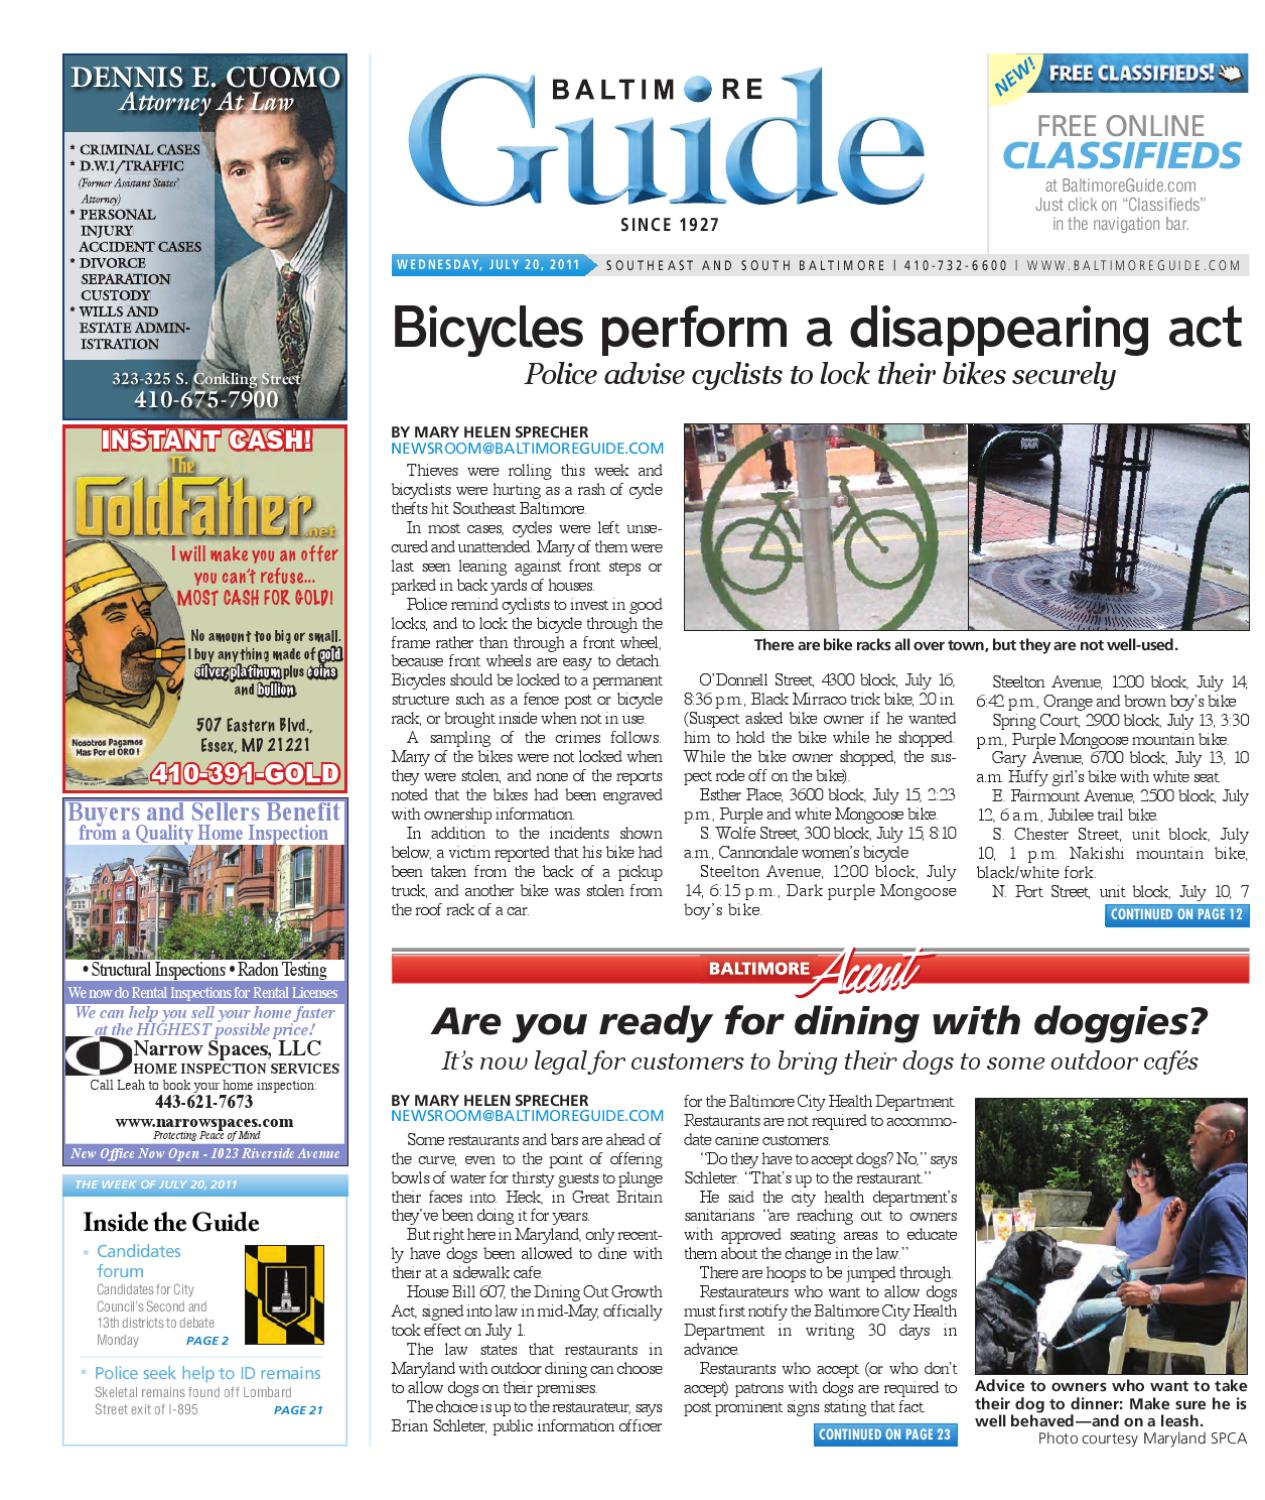 The Baltimore Guide - July 20, 2011 by The Baltimore Guide - issuu